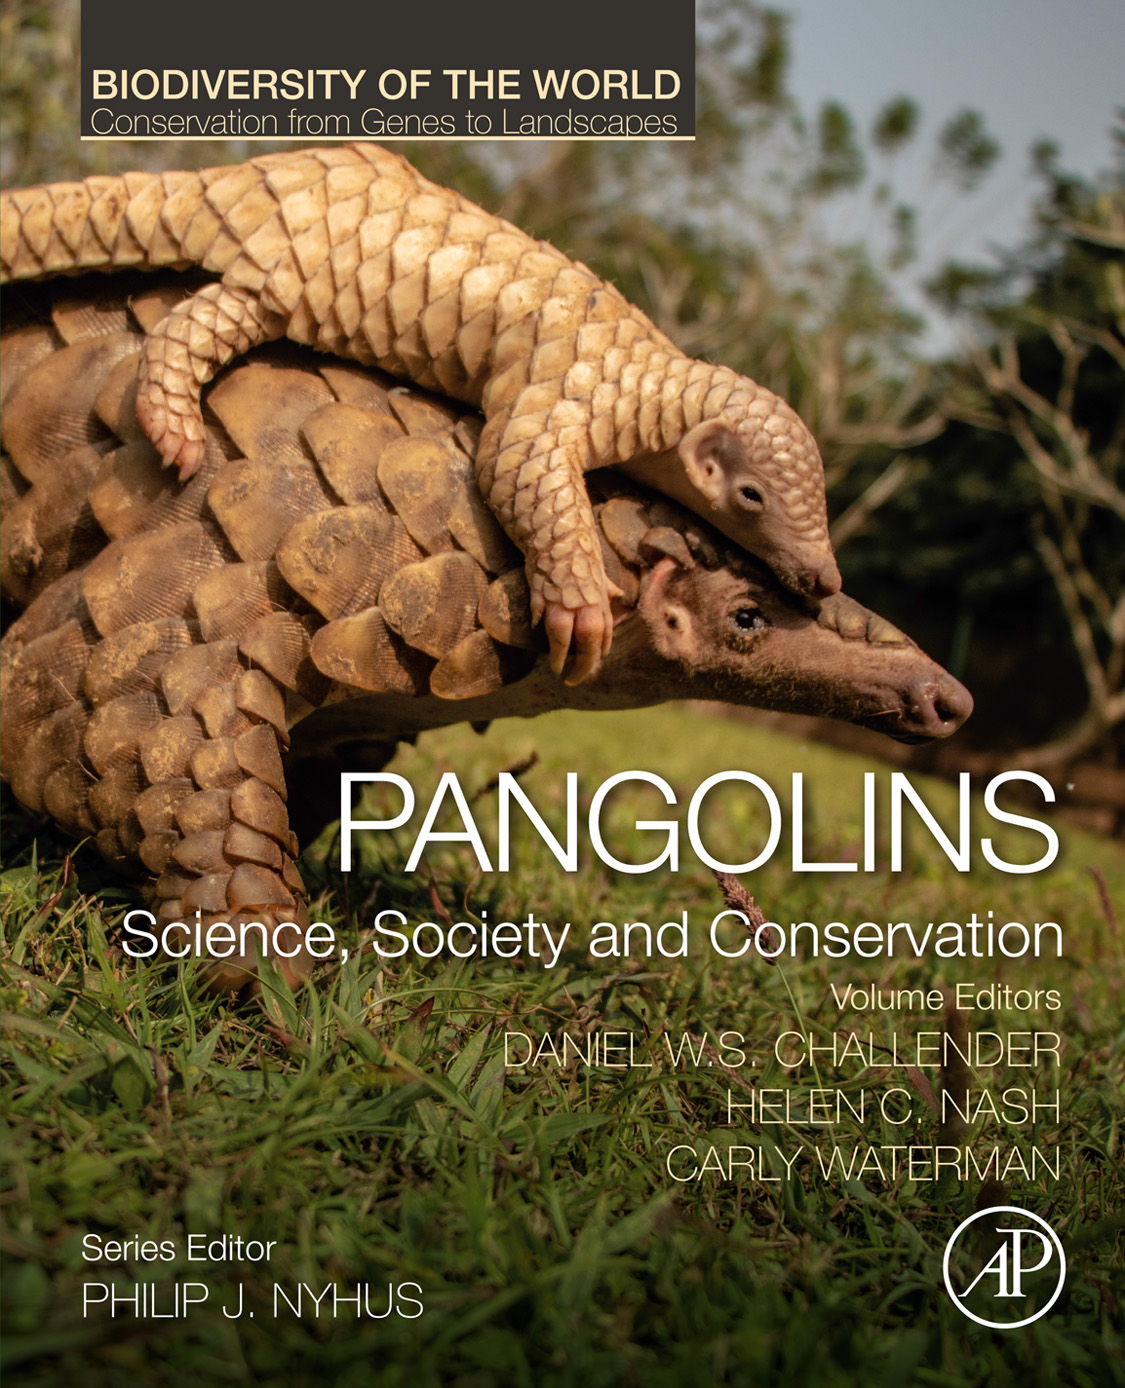 New book on pangolins